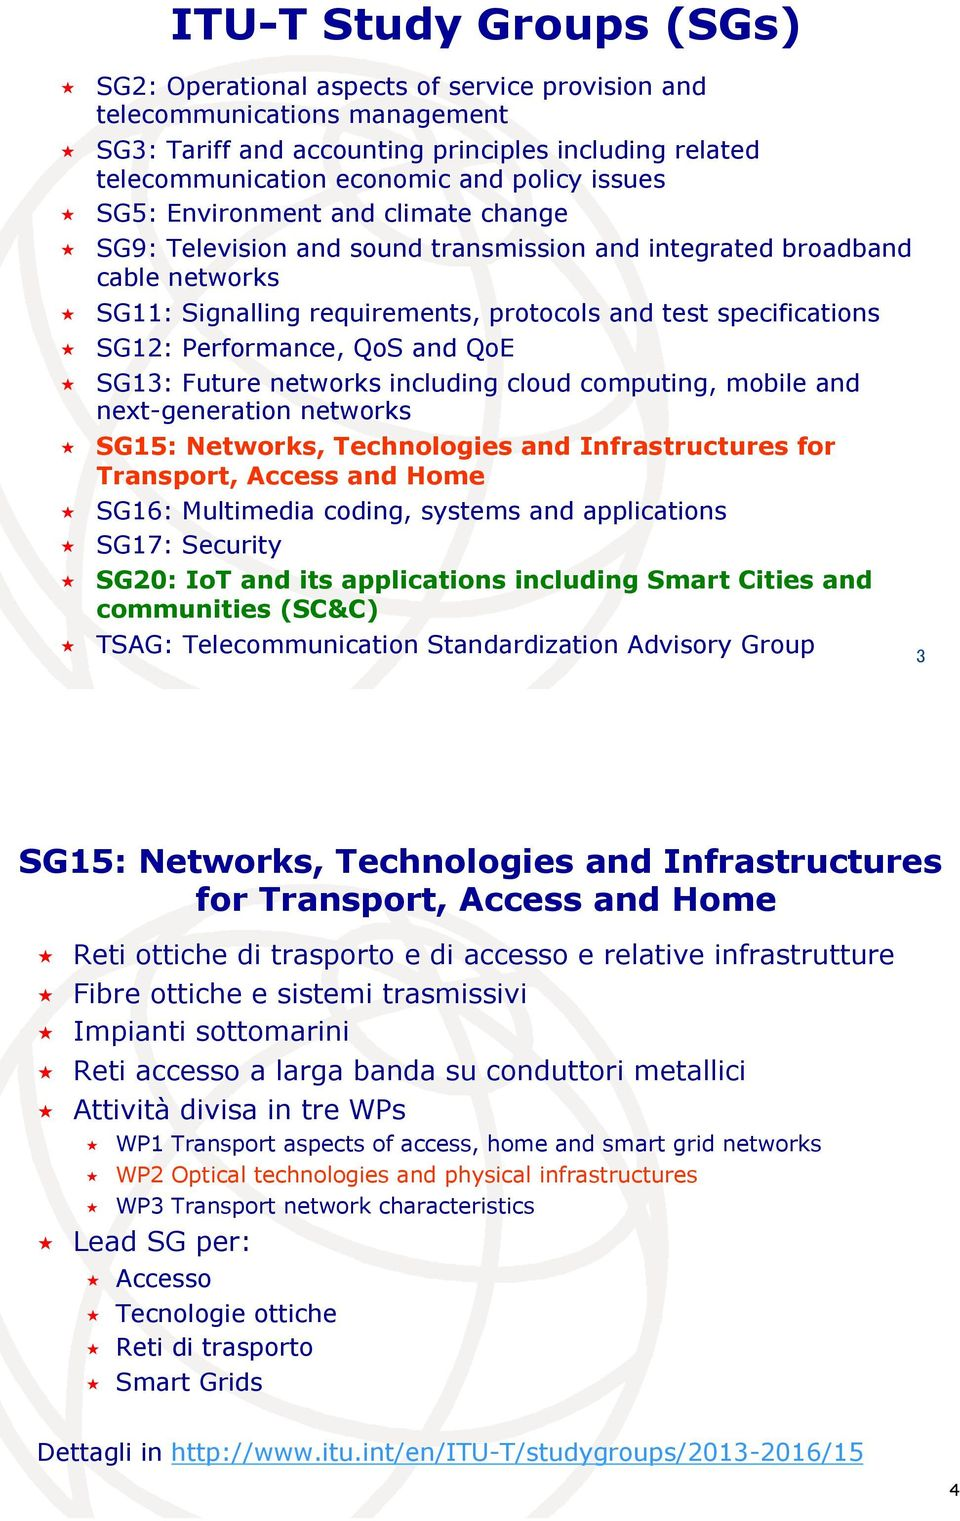 SG9: Television and sound transmission and integrated broadband cable networks! SG11: Signalling requirements, protocols and test specifications! SG12: Performance, QoS and QoE!